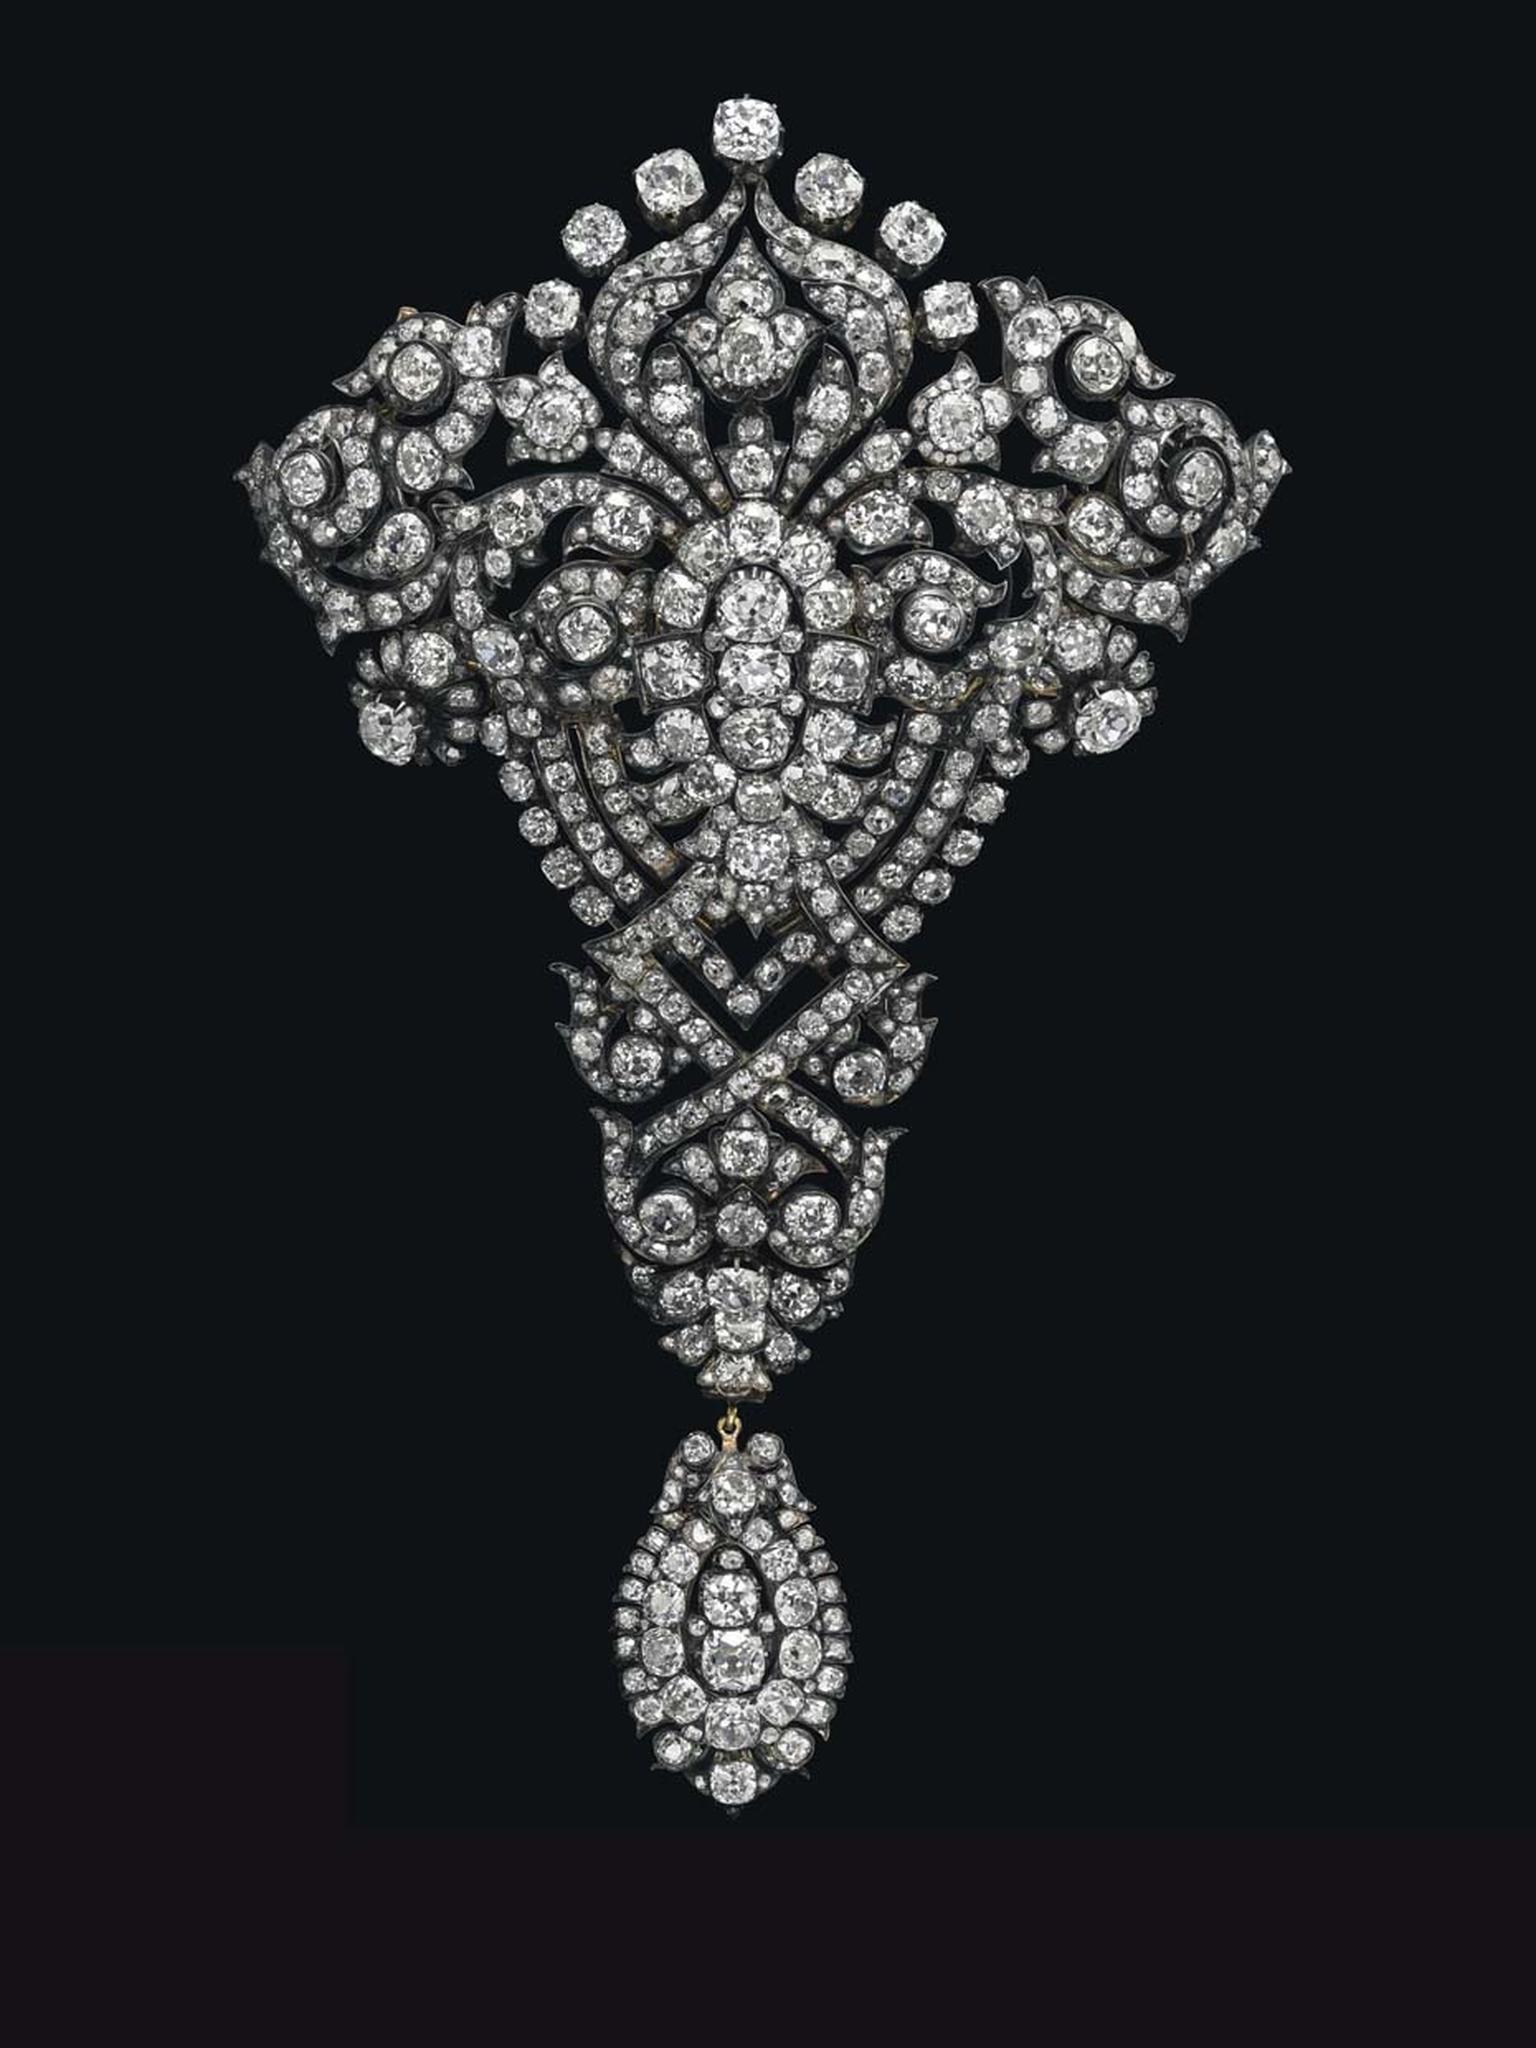 Christies_Magnificent Jewel Spring Sale_Devant de corsage brooch.jpg